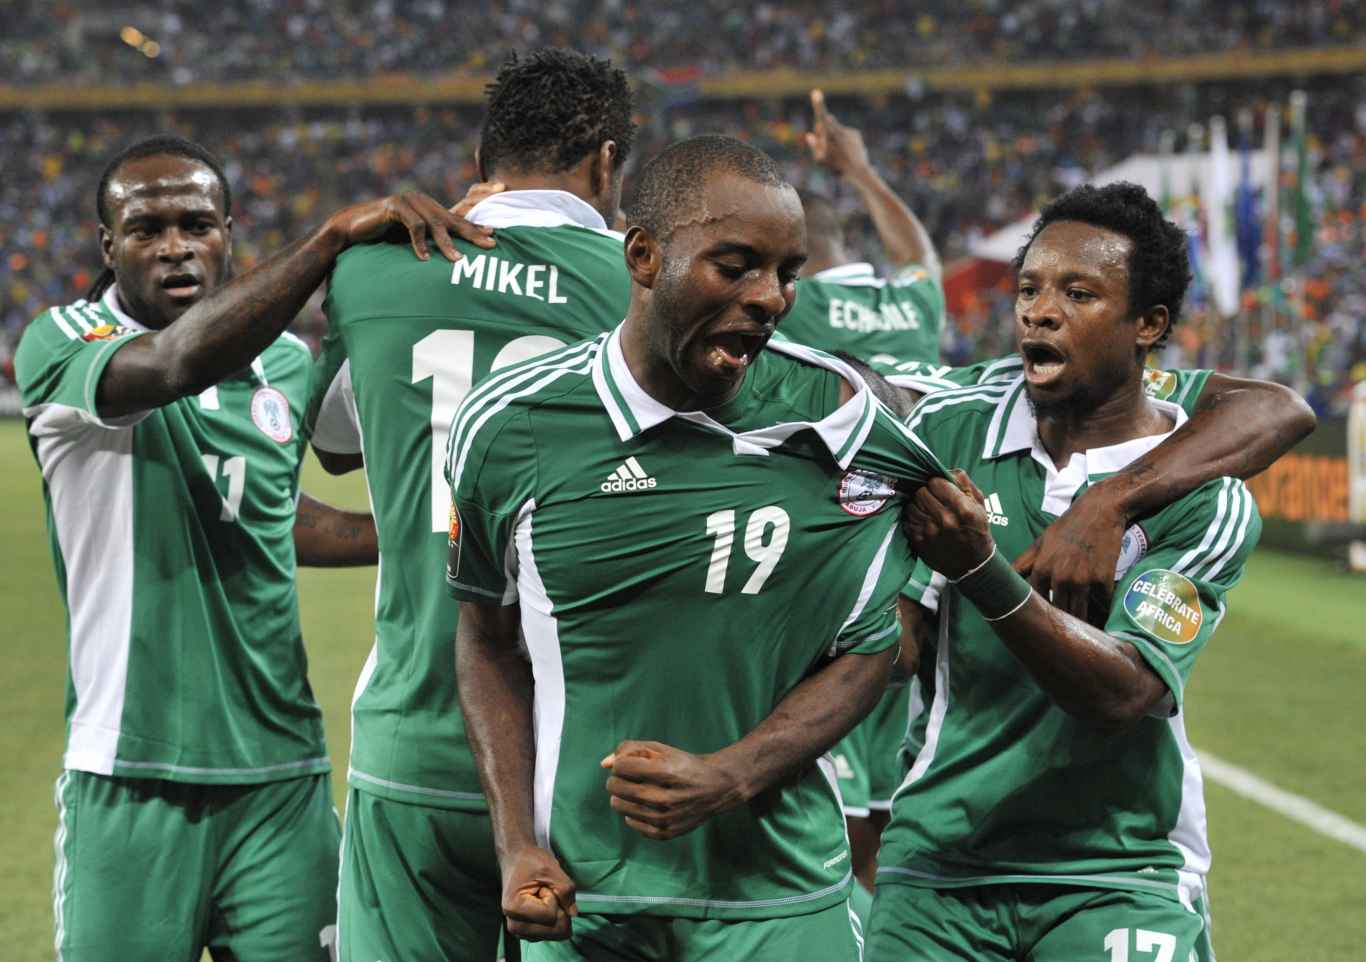 Nigeria's forward Sunday Mba (C) celebrates with teammates after scoring the opening goal against Burkina Faso during the 2013 African Cup of Nations final football match between Burkina Faso and Nigeria on February 10, 2013 at Soccer City stadium in Johannesburg.